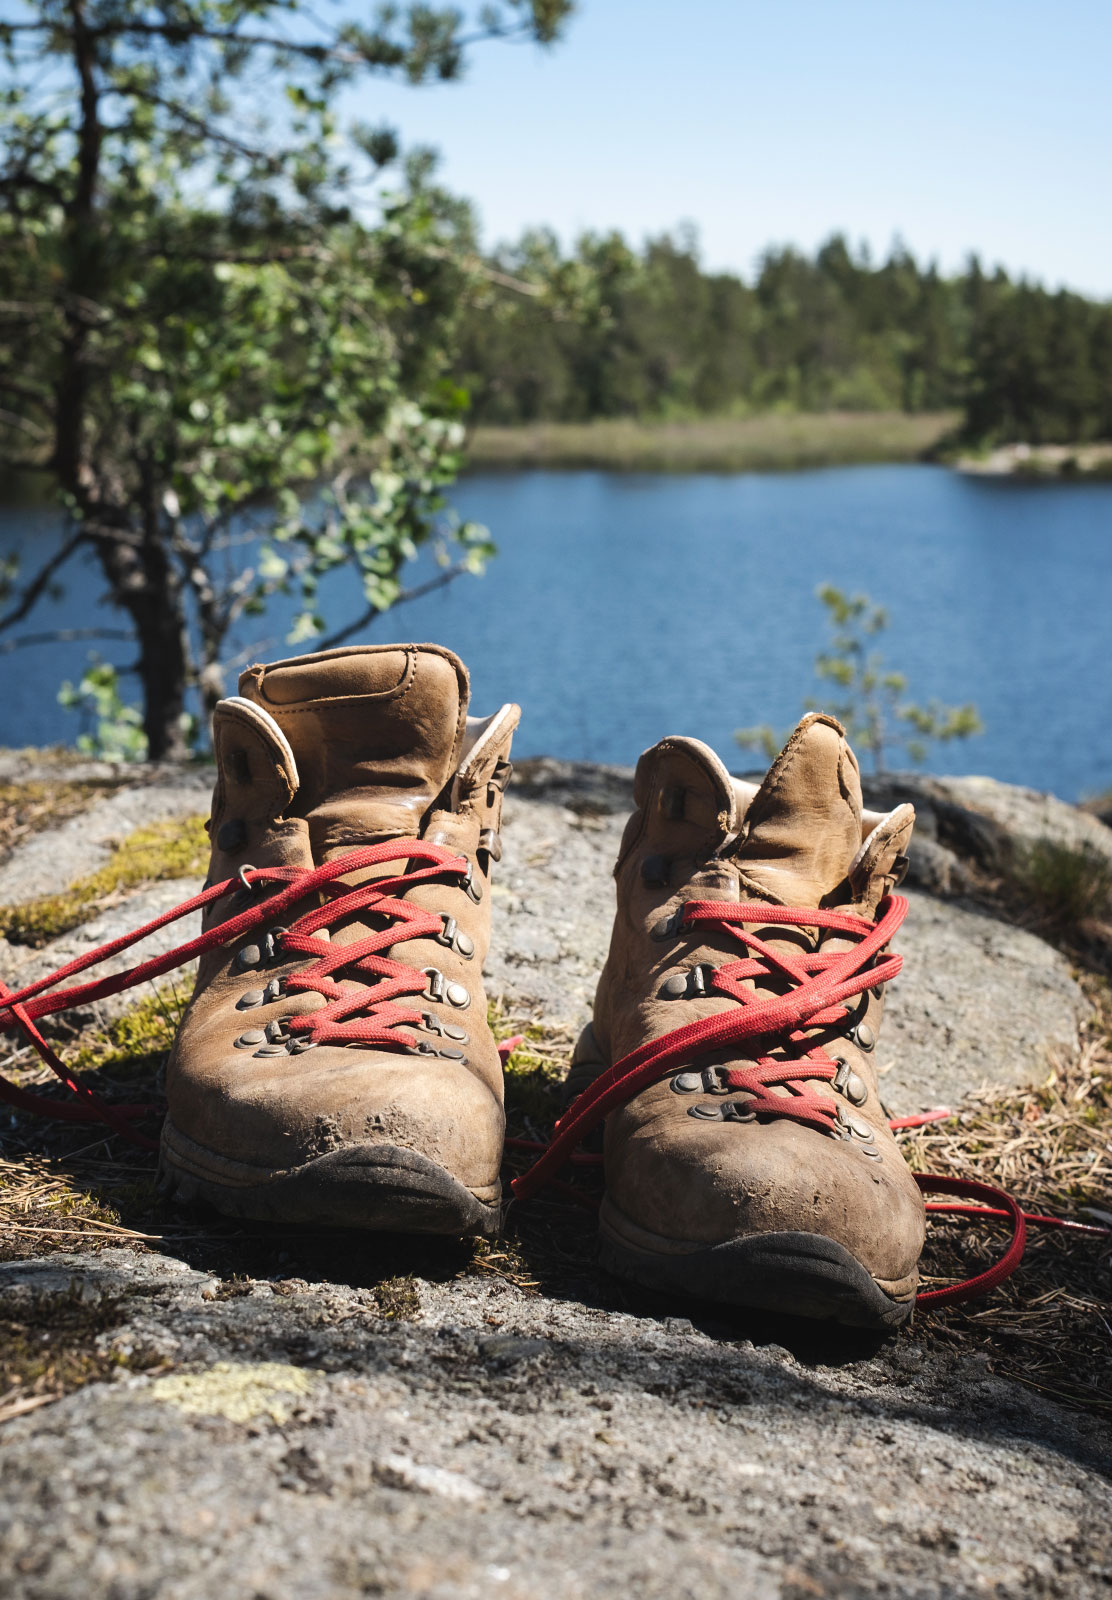 Boots resting on a rock